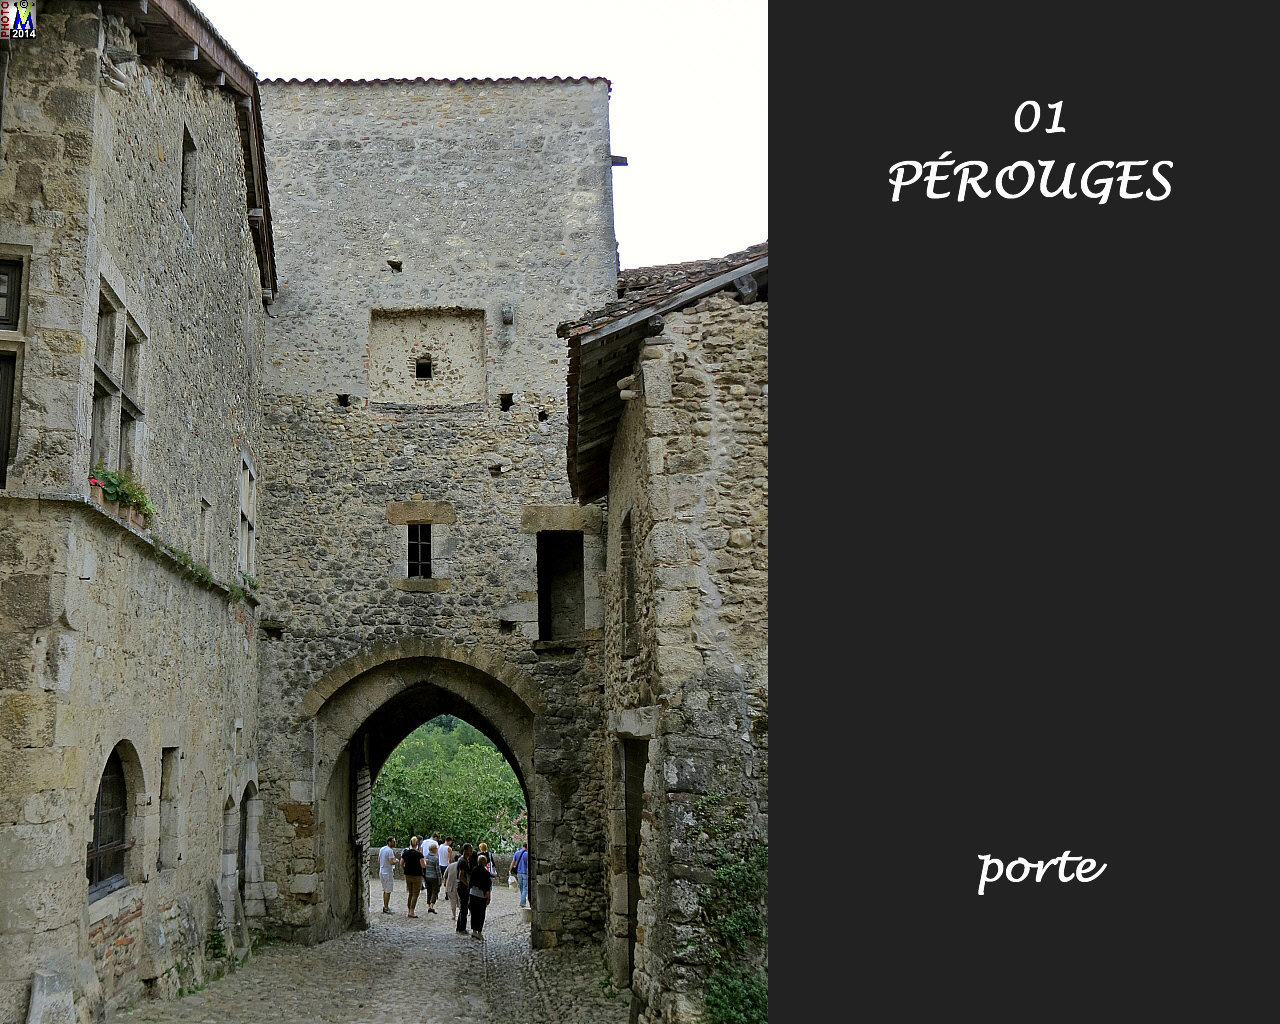 01PEROUGES_porte_112.jpg